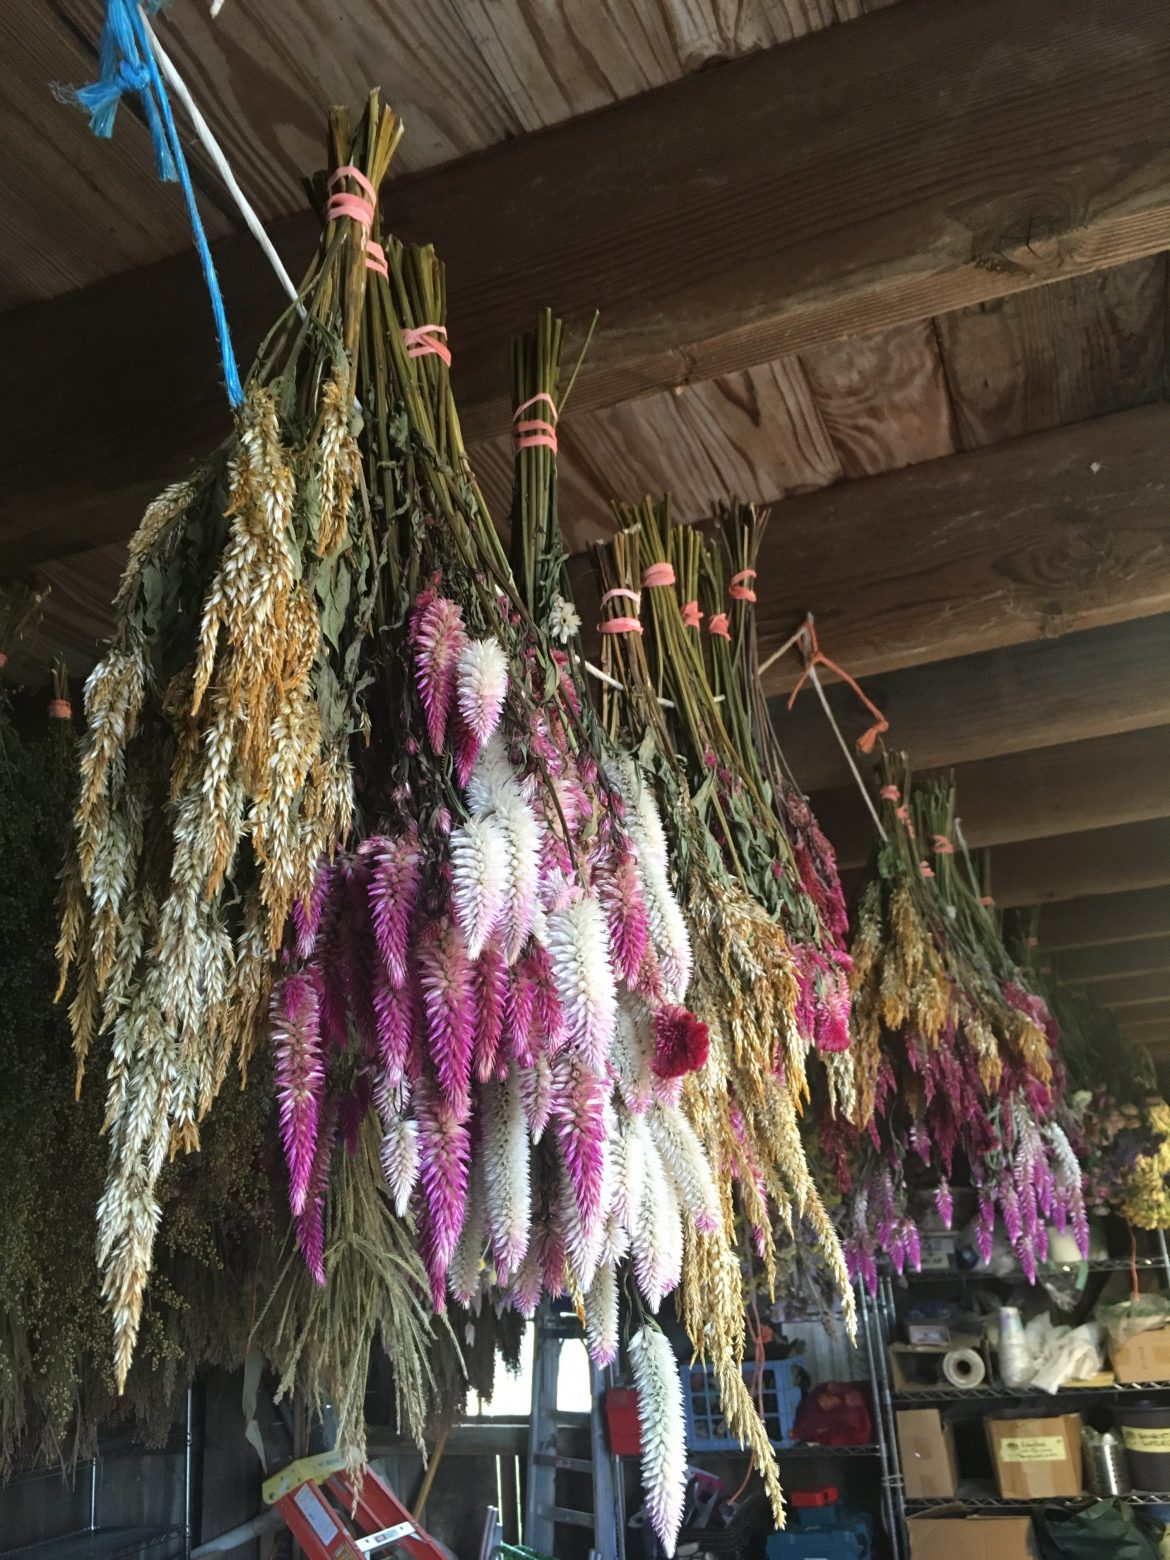 herbs drying in bunches from barn rafter